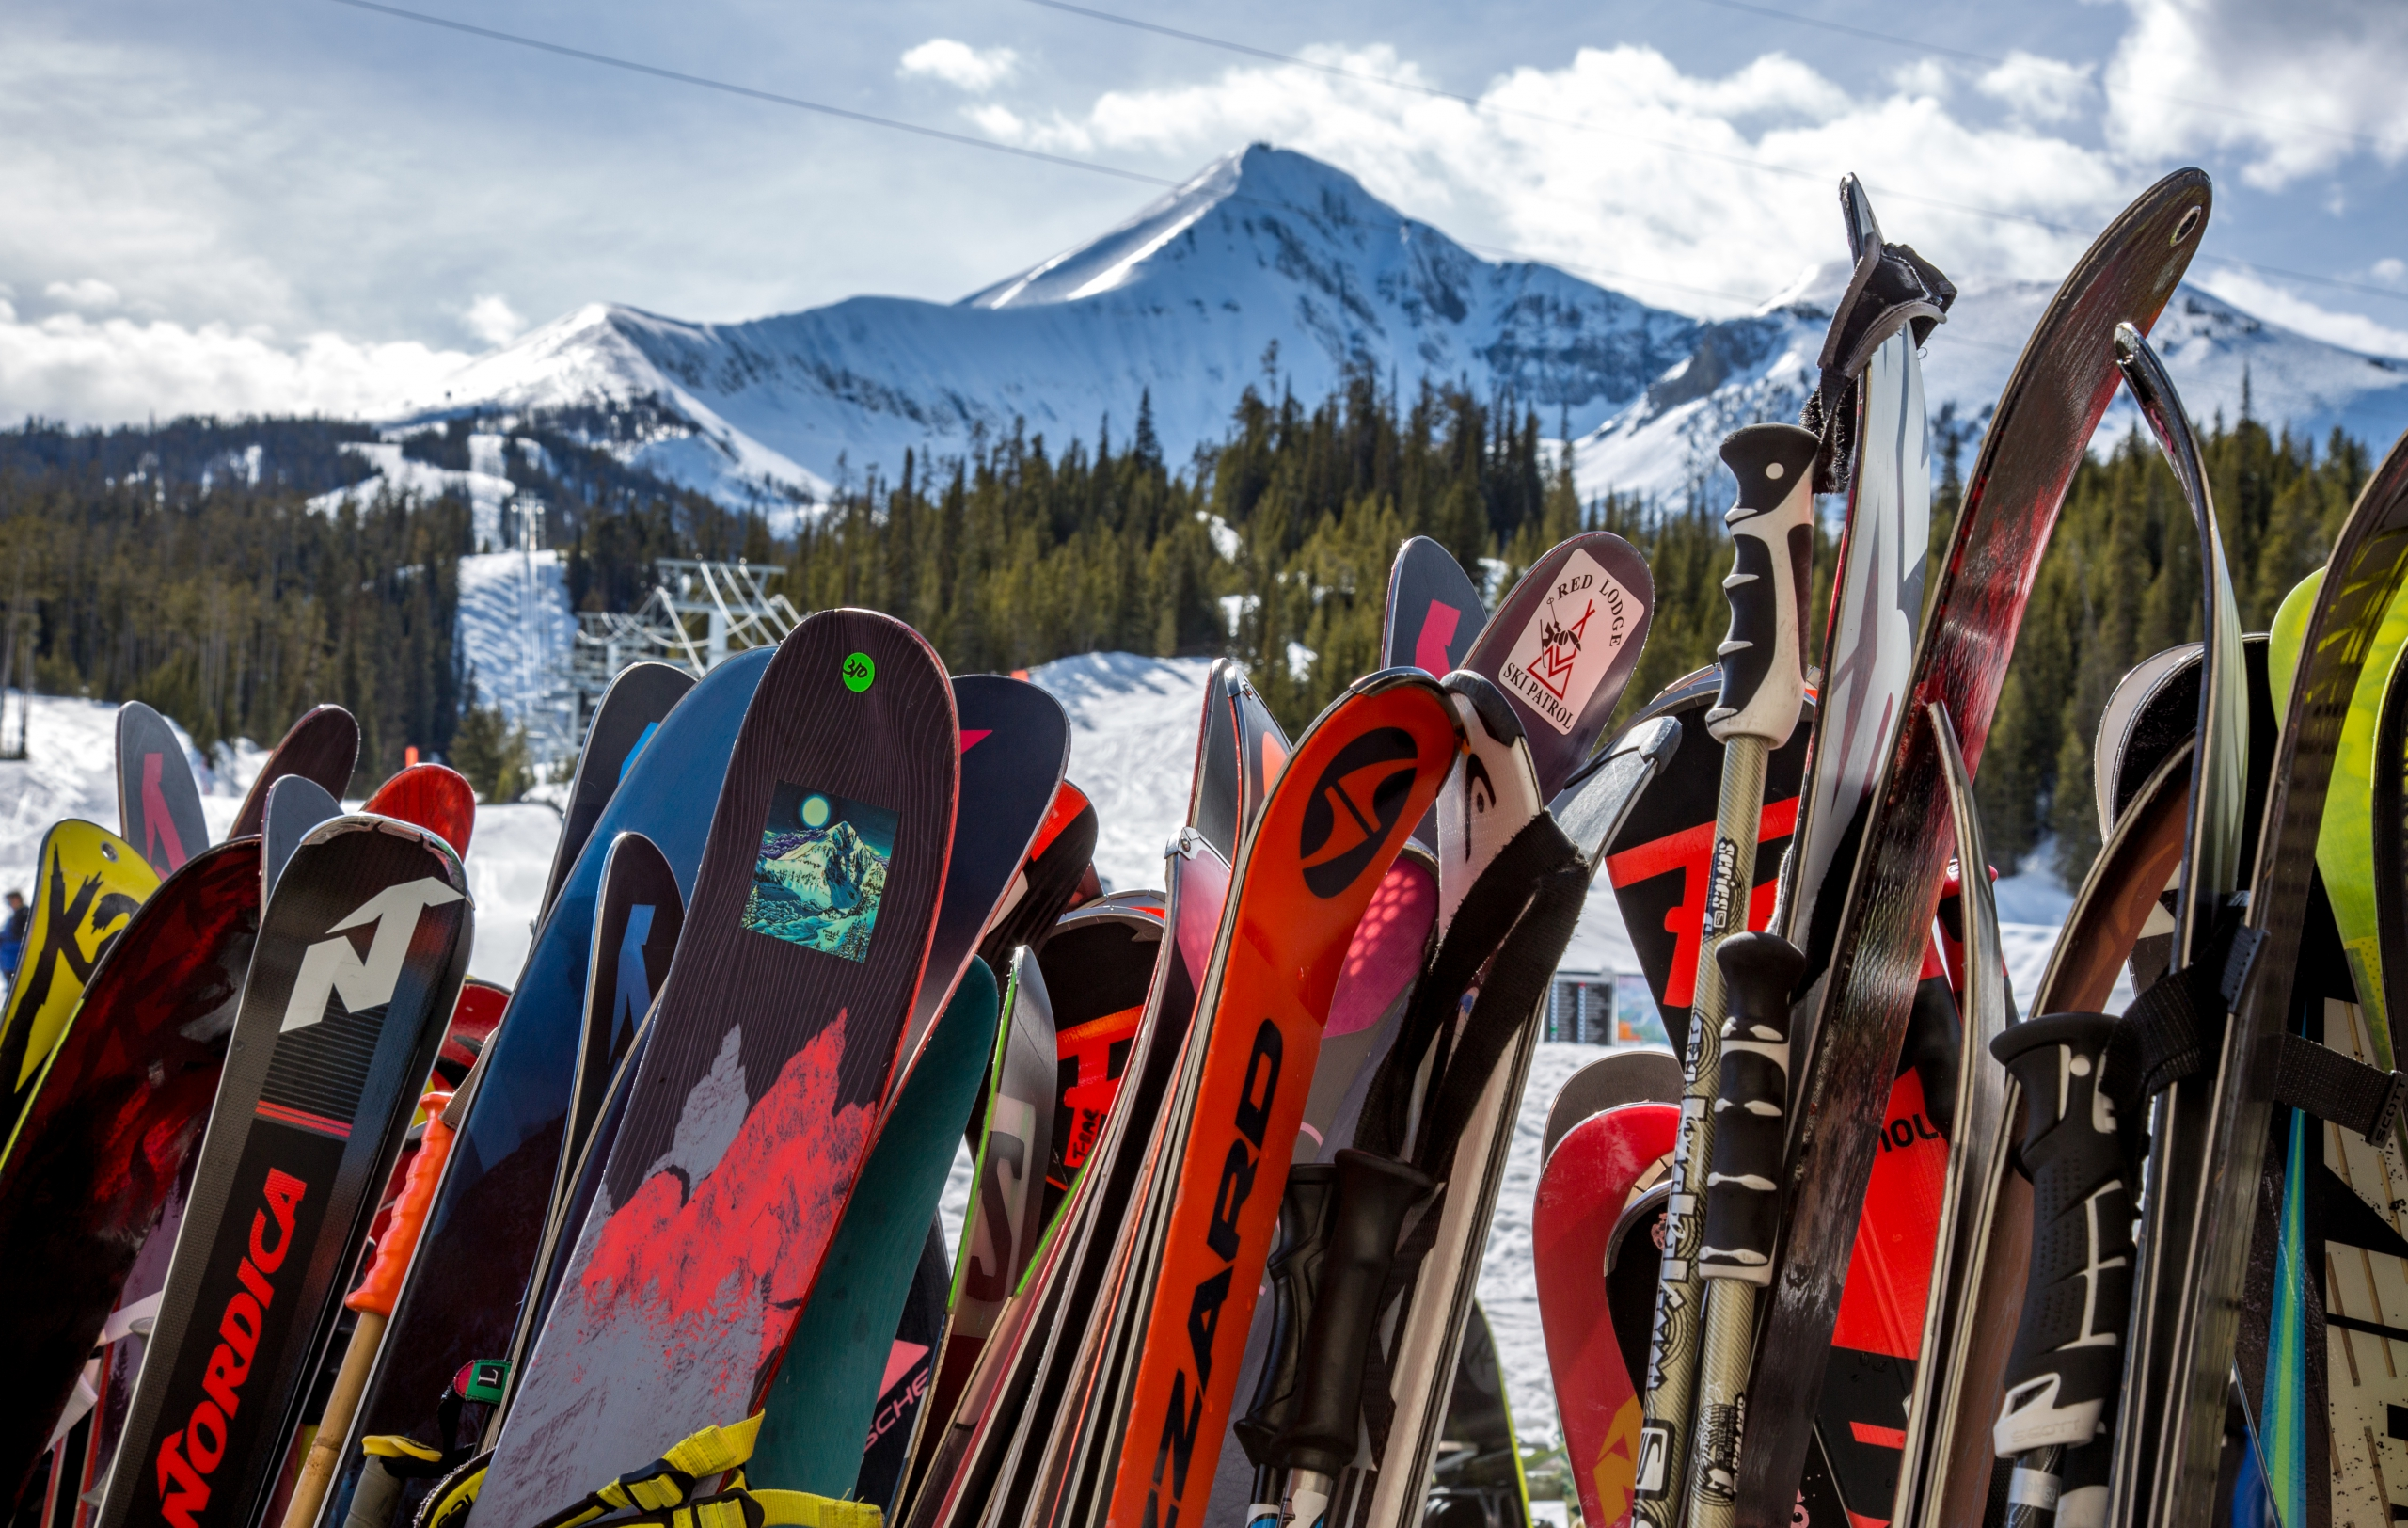 Skis and snowboards rest on a ski rack with Big Sky's Lone Peak in the background